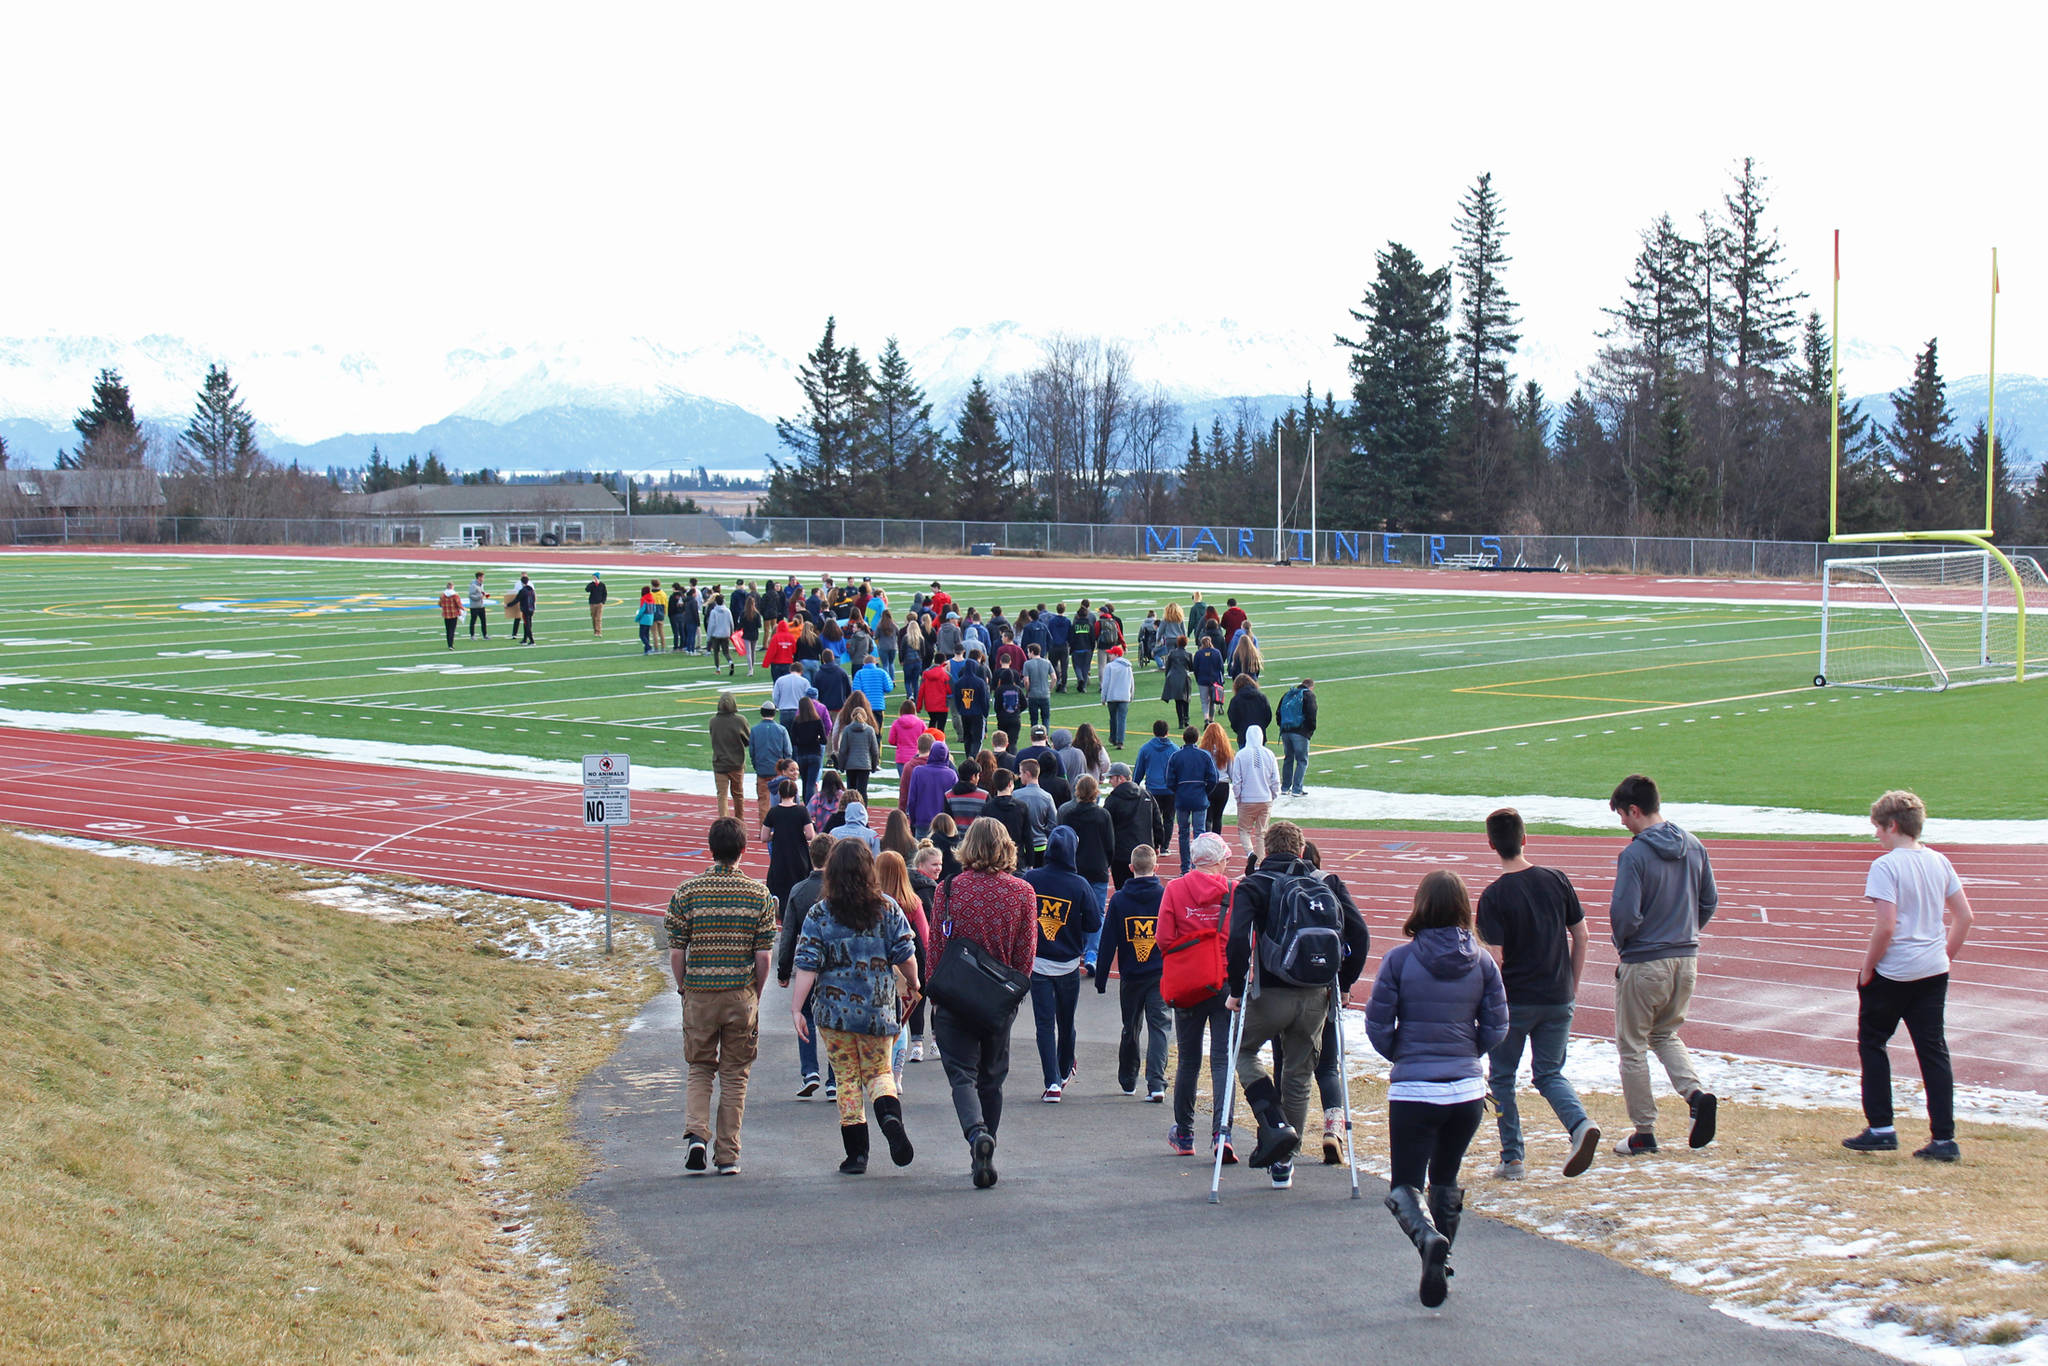 About 100 Homer High School students gather on the football field during a walkout staged Wednesday, Feb. 21, 2018 to protest for safer schools and honor the students killed in the Valentine's Day mass shooting in Parkland, Florida. The students formed the number 17 with their bodies on the field. (Photo by Megan Pacer/Homer News)